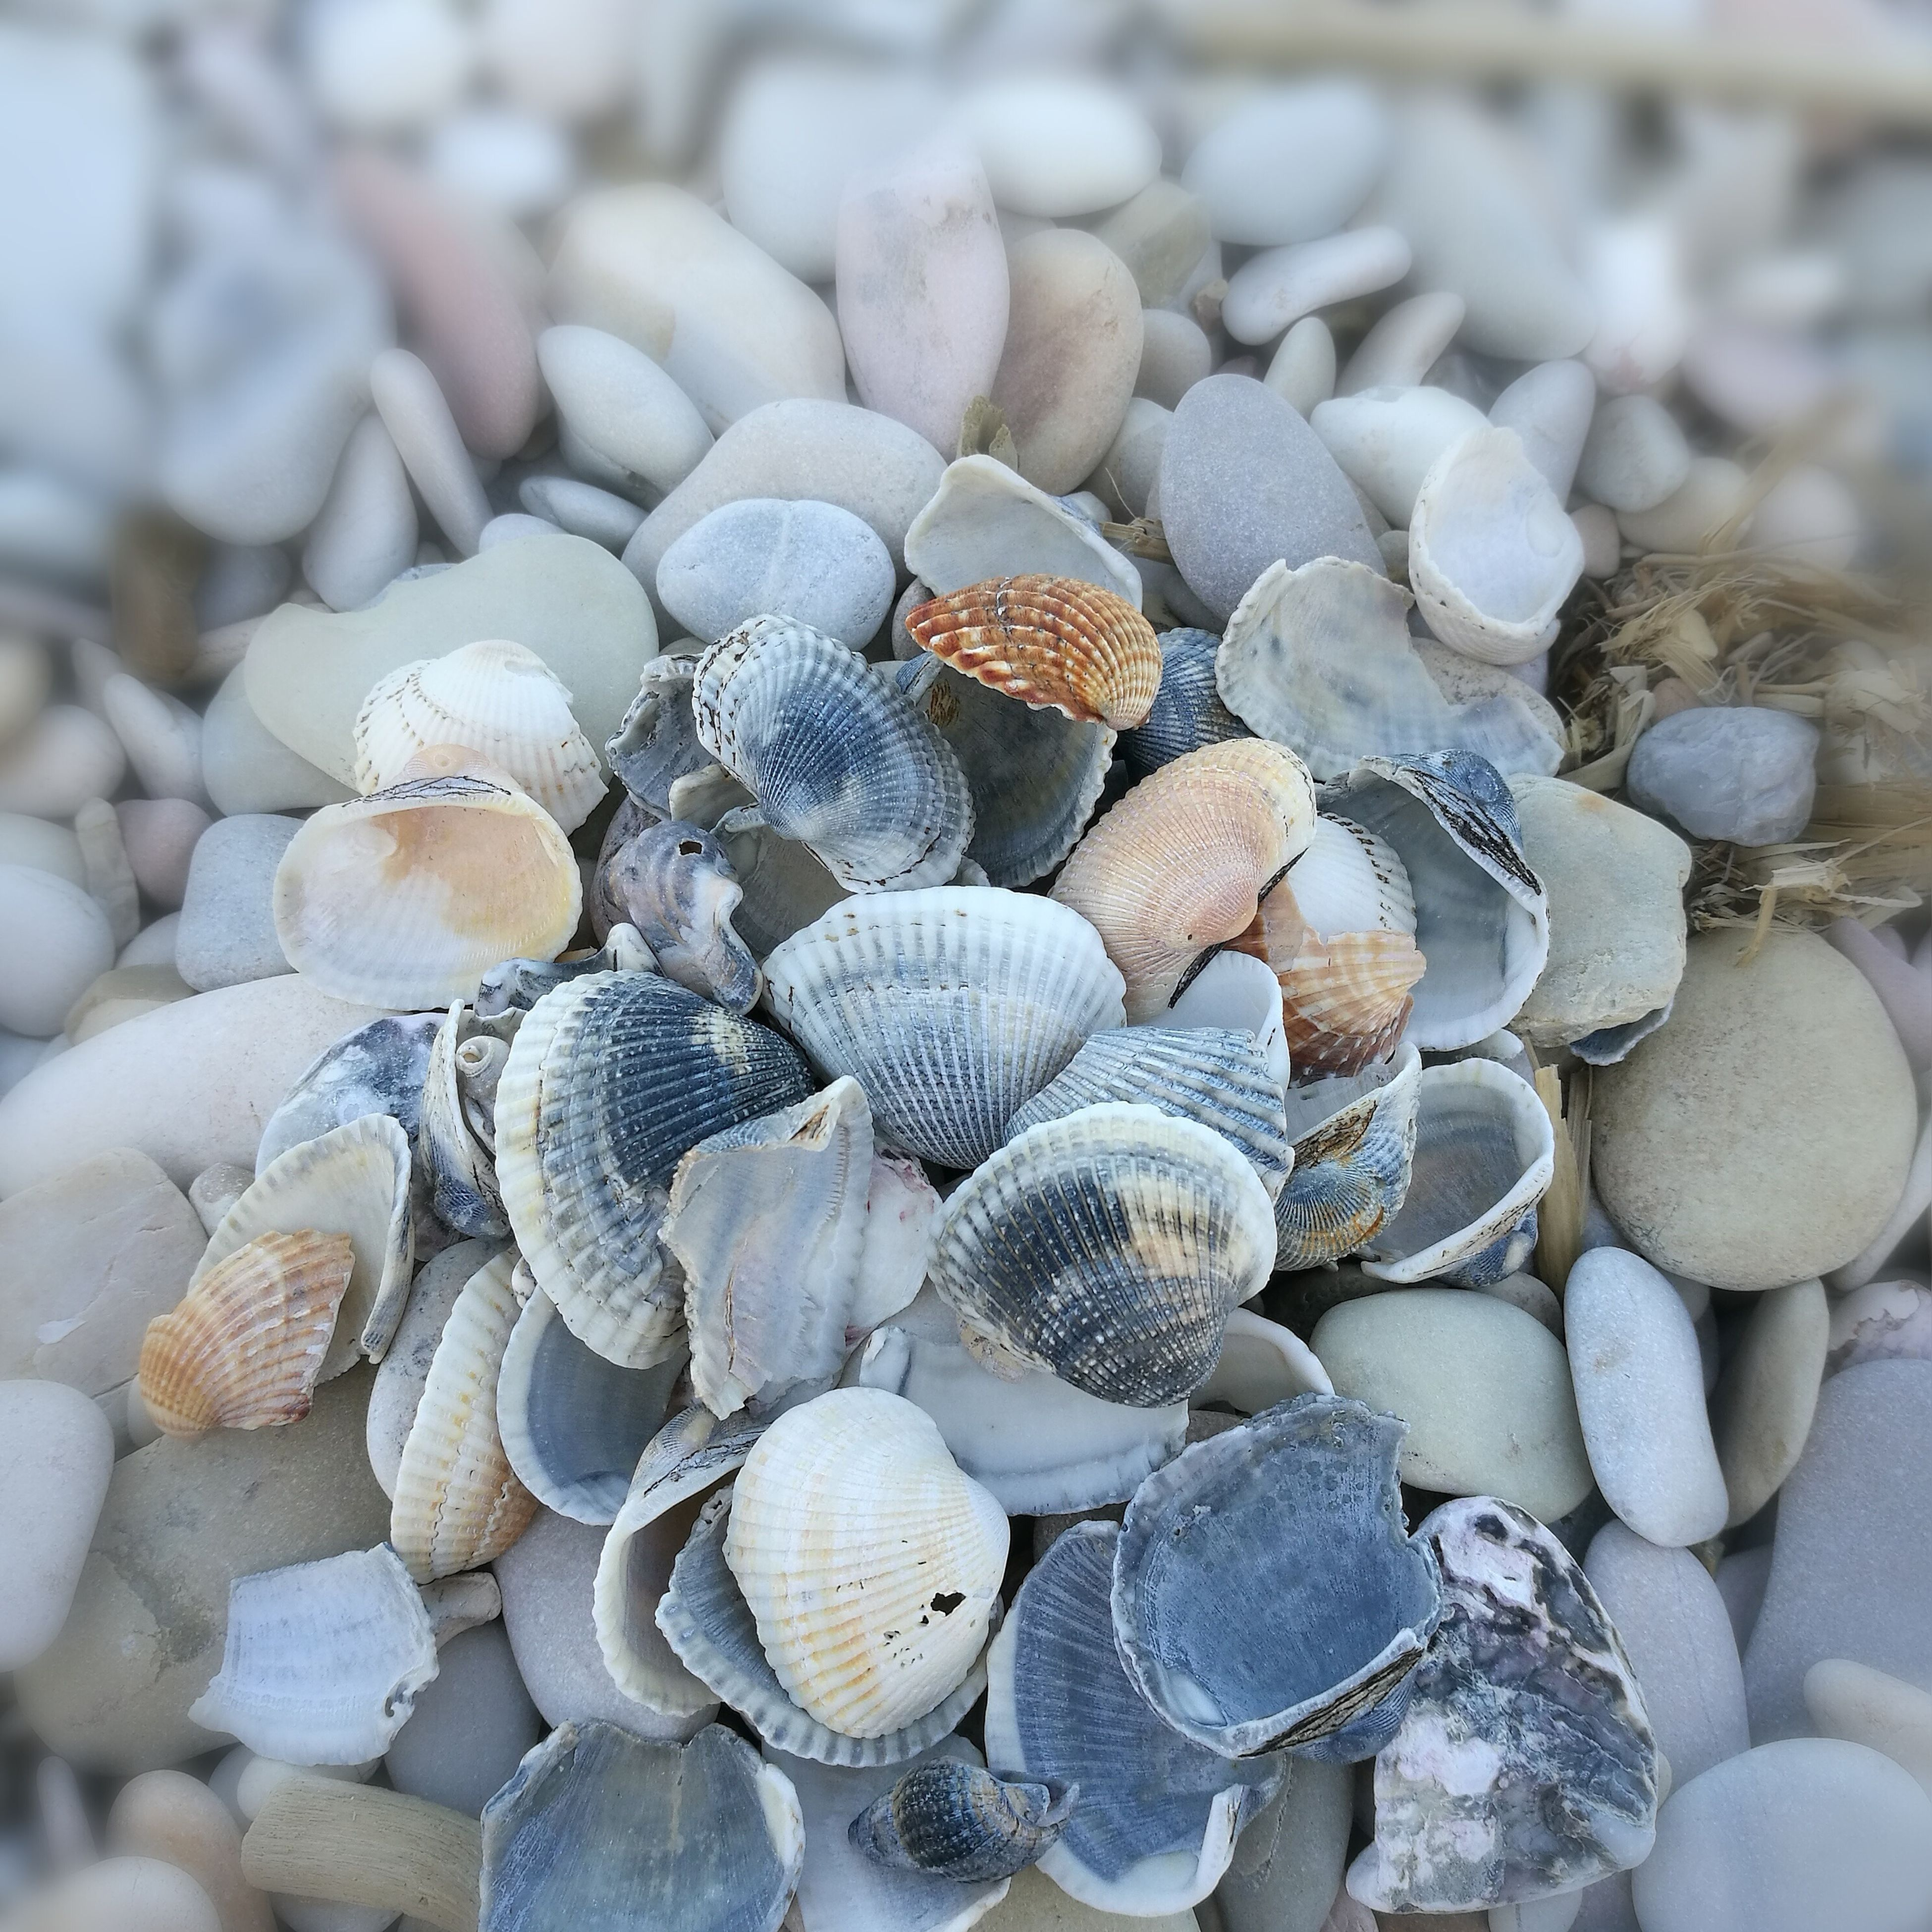 seashell, animal shell, clam, pebble, beach, nature, large group of objects, day, no people, abundance, outdoors, beauty in nature, full frame, backgrounds, pebble beach, close-up